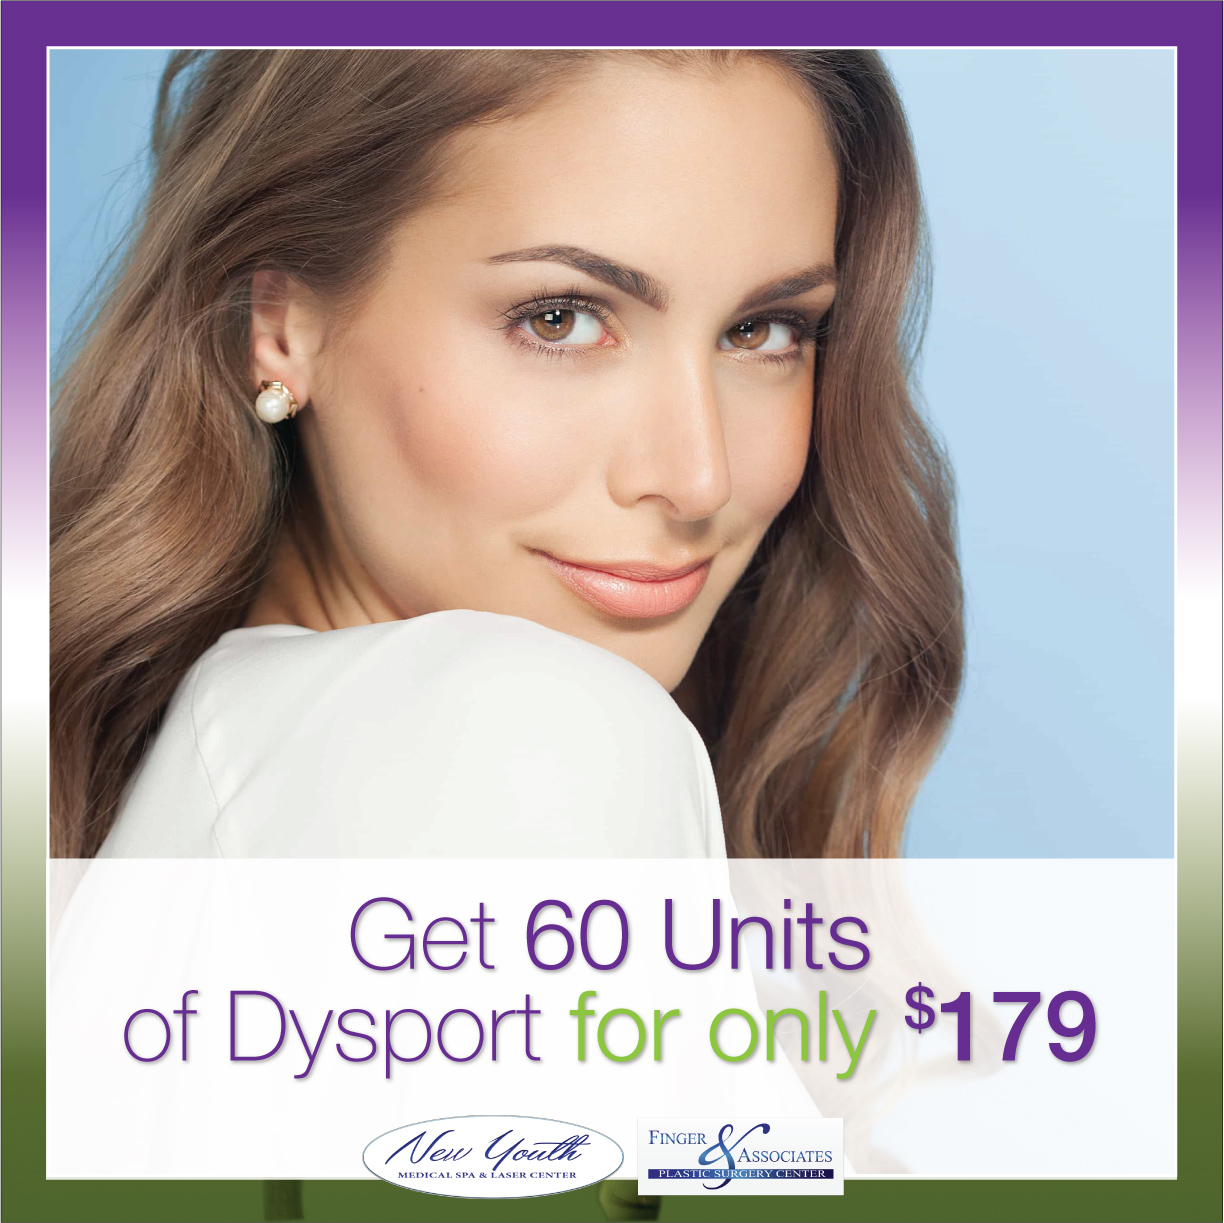 MONTHLY SPECIALS FOR JUNE AND JULY 2019 INCLUDE DYSPORT DISCOUNTS EXPIRES JULY 31ST, 2019